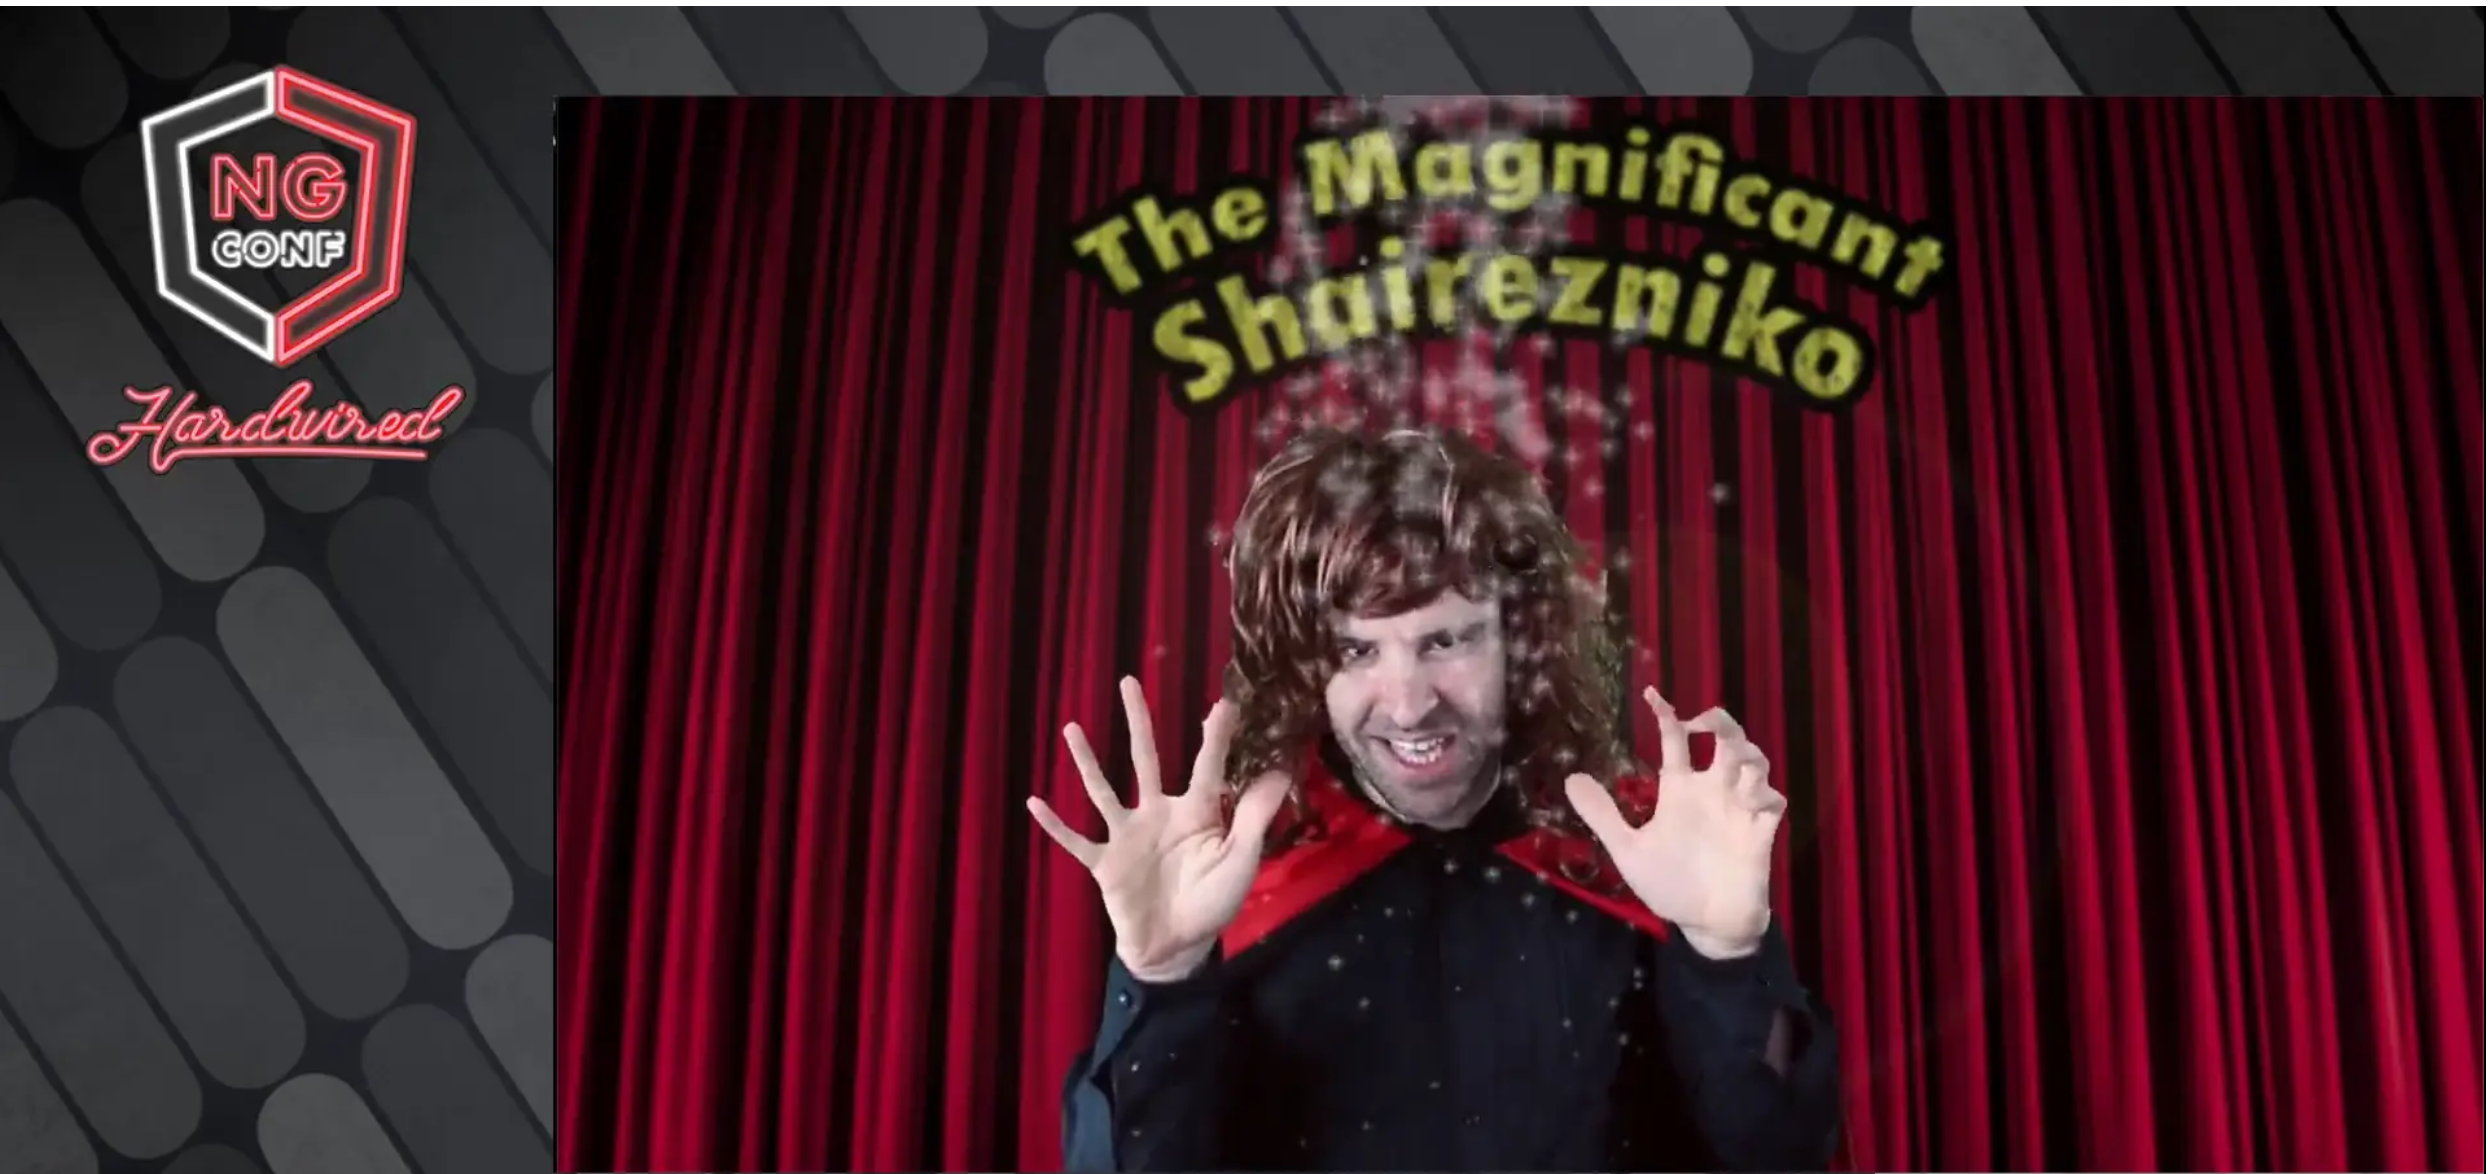 Resilient Angular Testing – Jaw Dropping Magic Tricks by The Magnificent Shairezniko